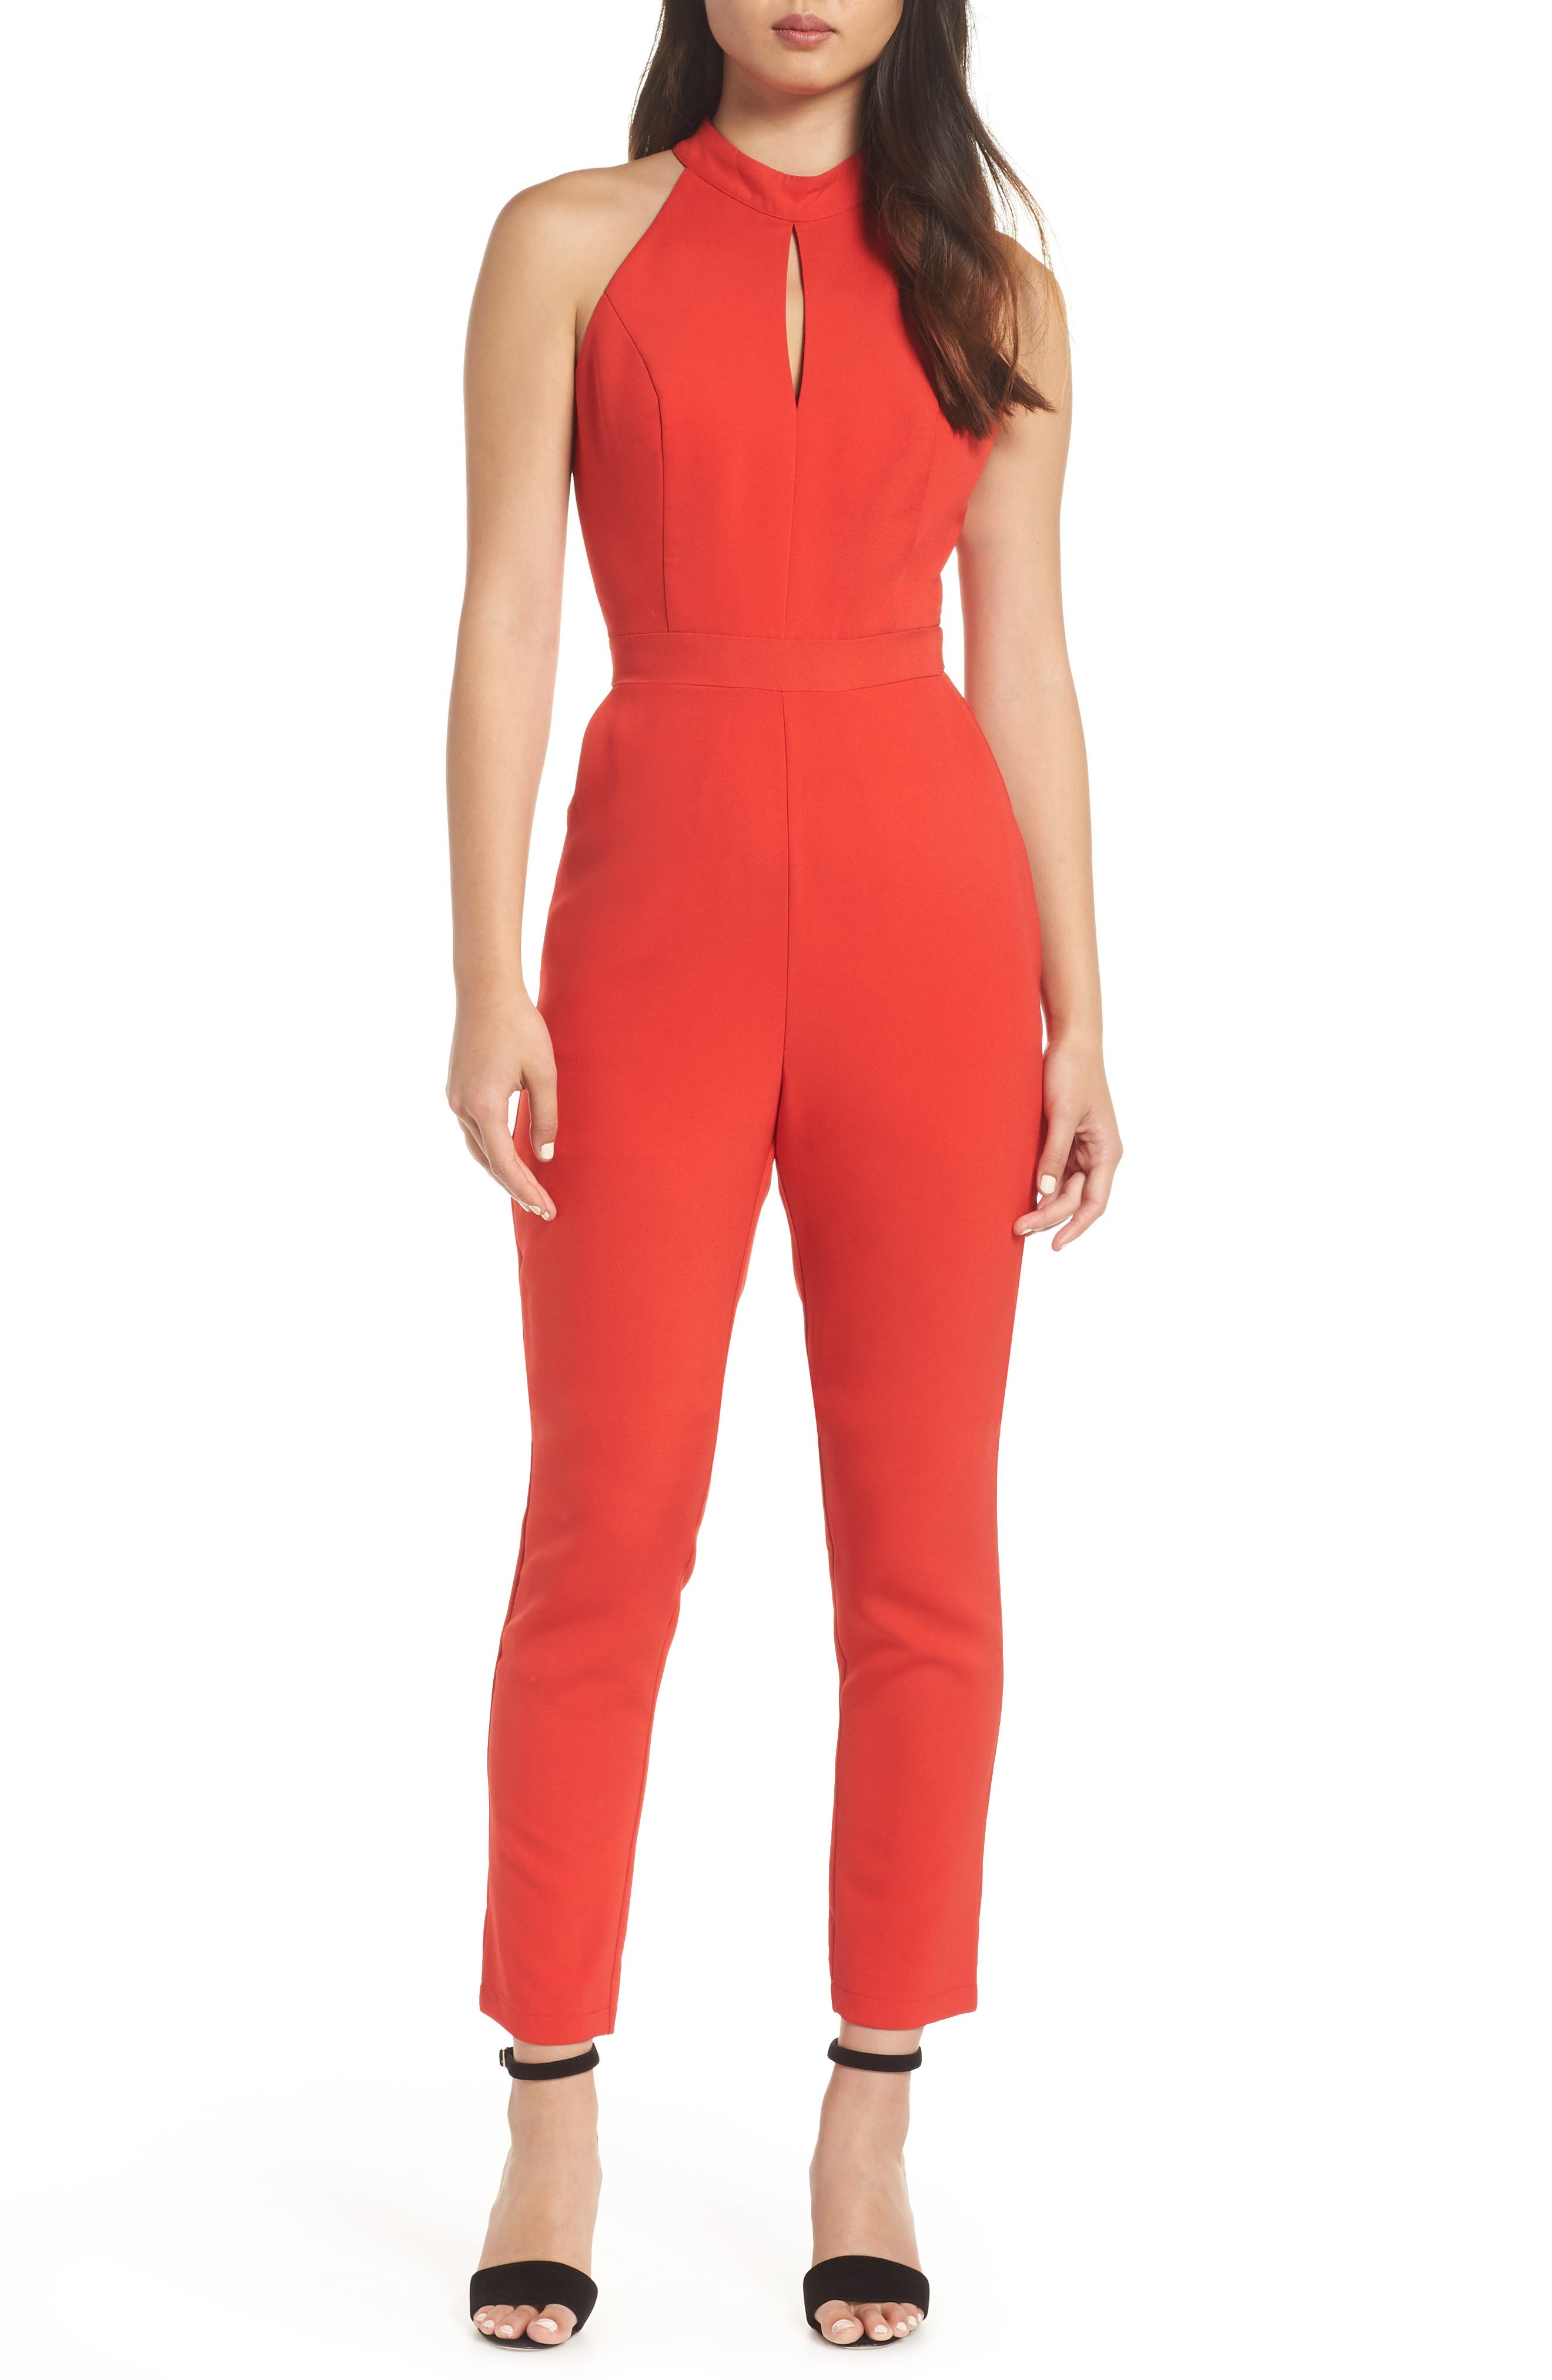 ADELYN RAE Shaylie Scalloped Back Jumpsuit in Red